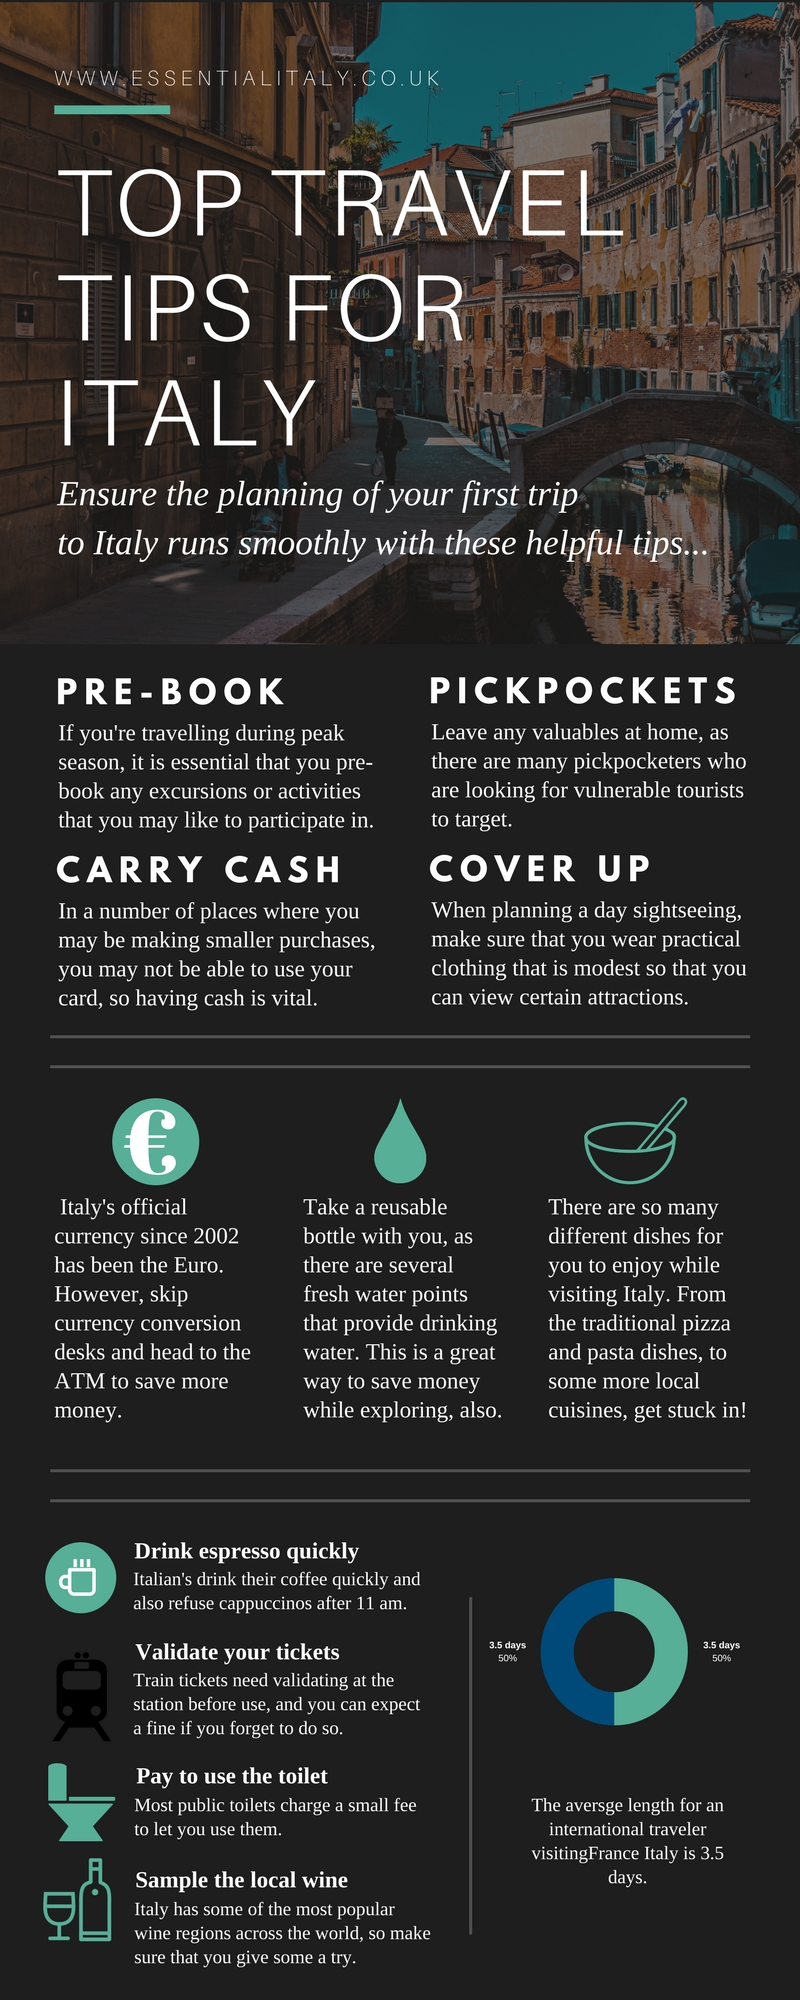 Best travel tips in Italy infographic